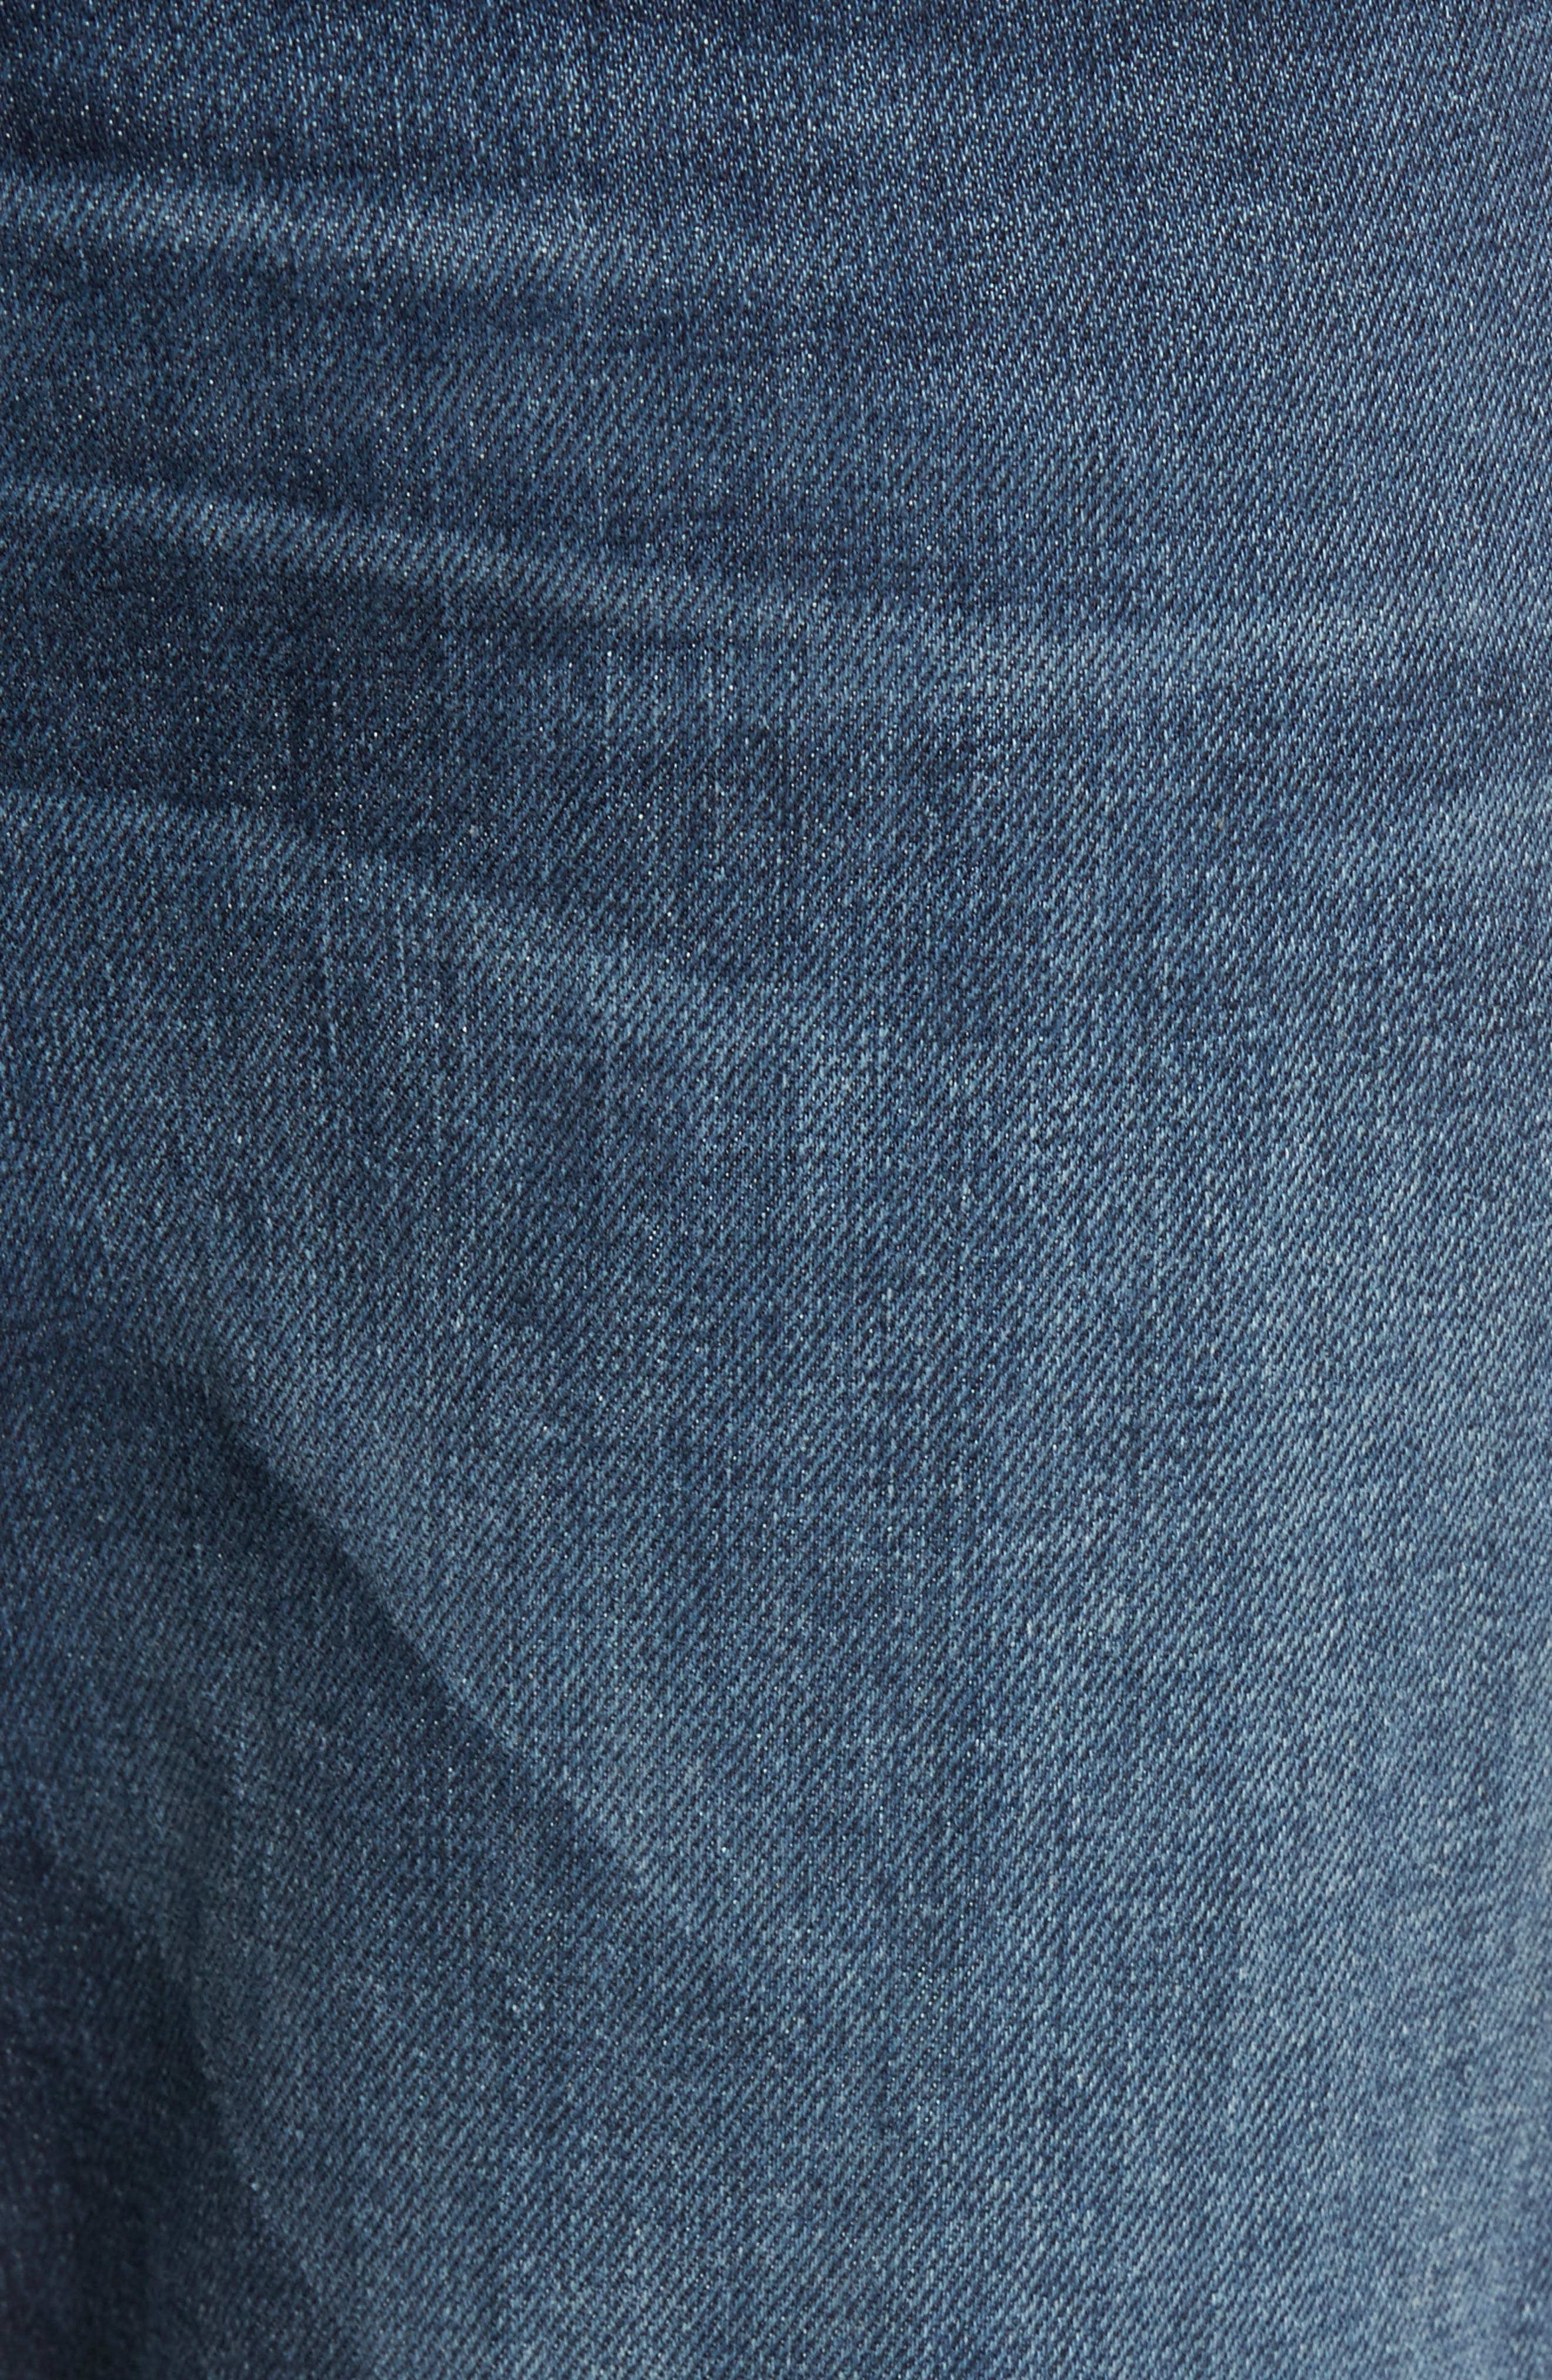 Geno Straight Leg Jeans,                             Alternate thumbnail 5, color,                             BLUE CASCADE